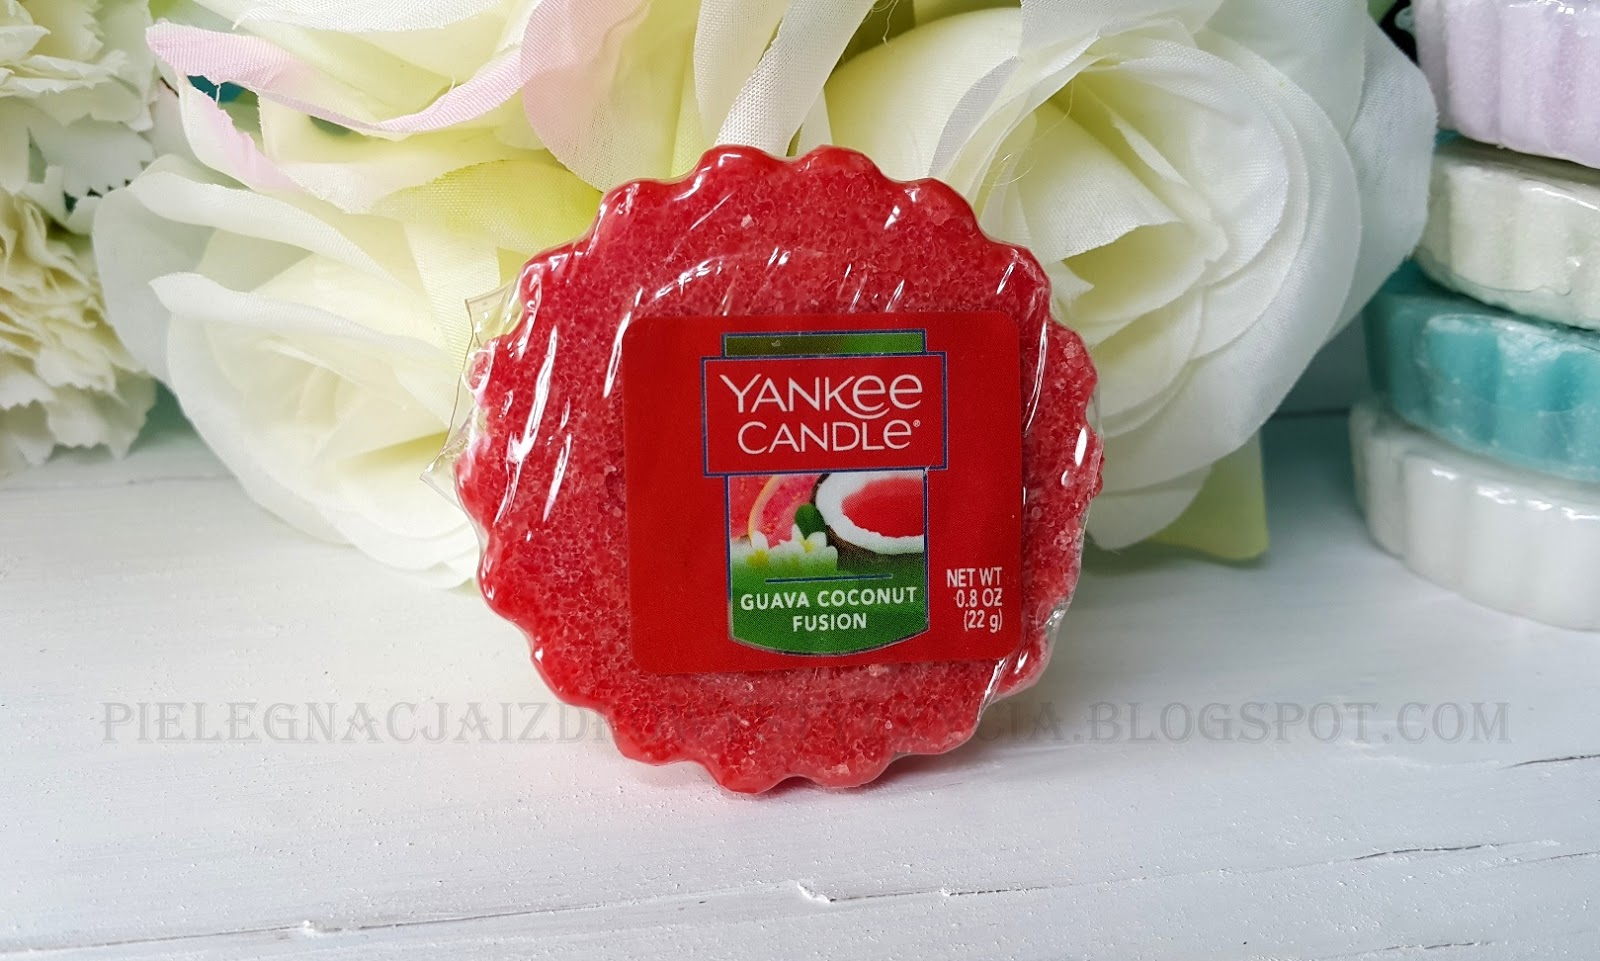 Guava Coconut Fusion Yankee Candle